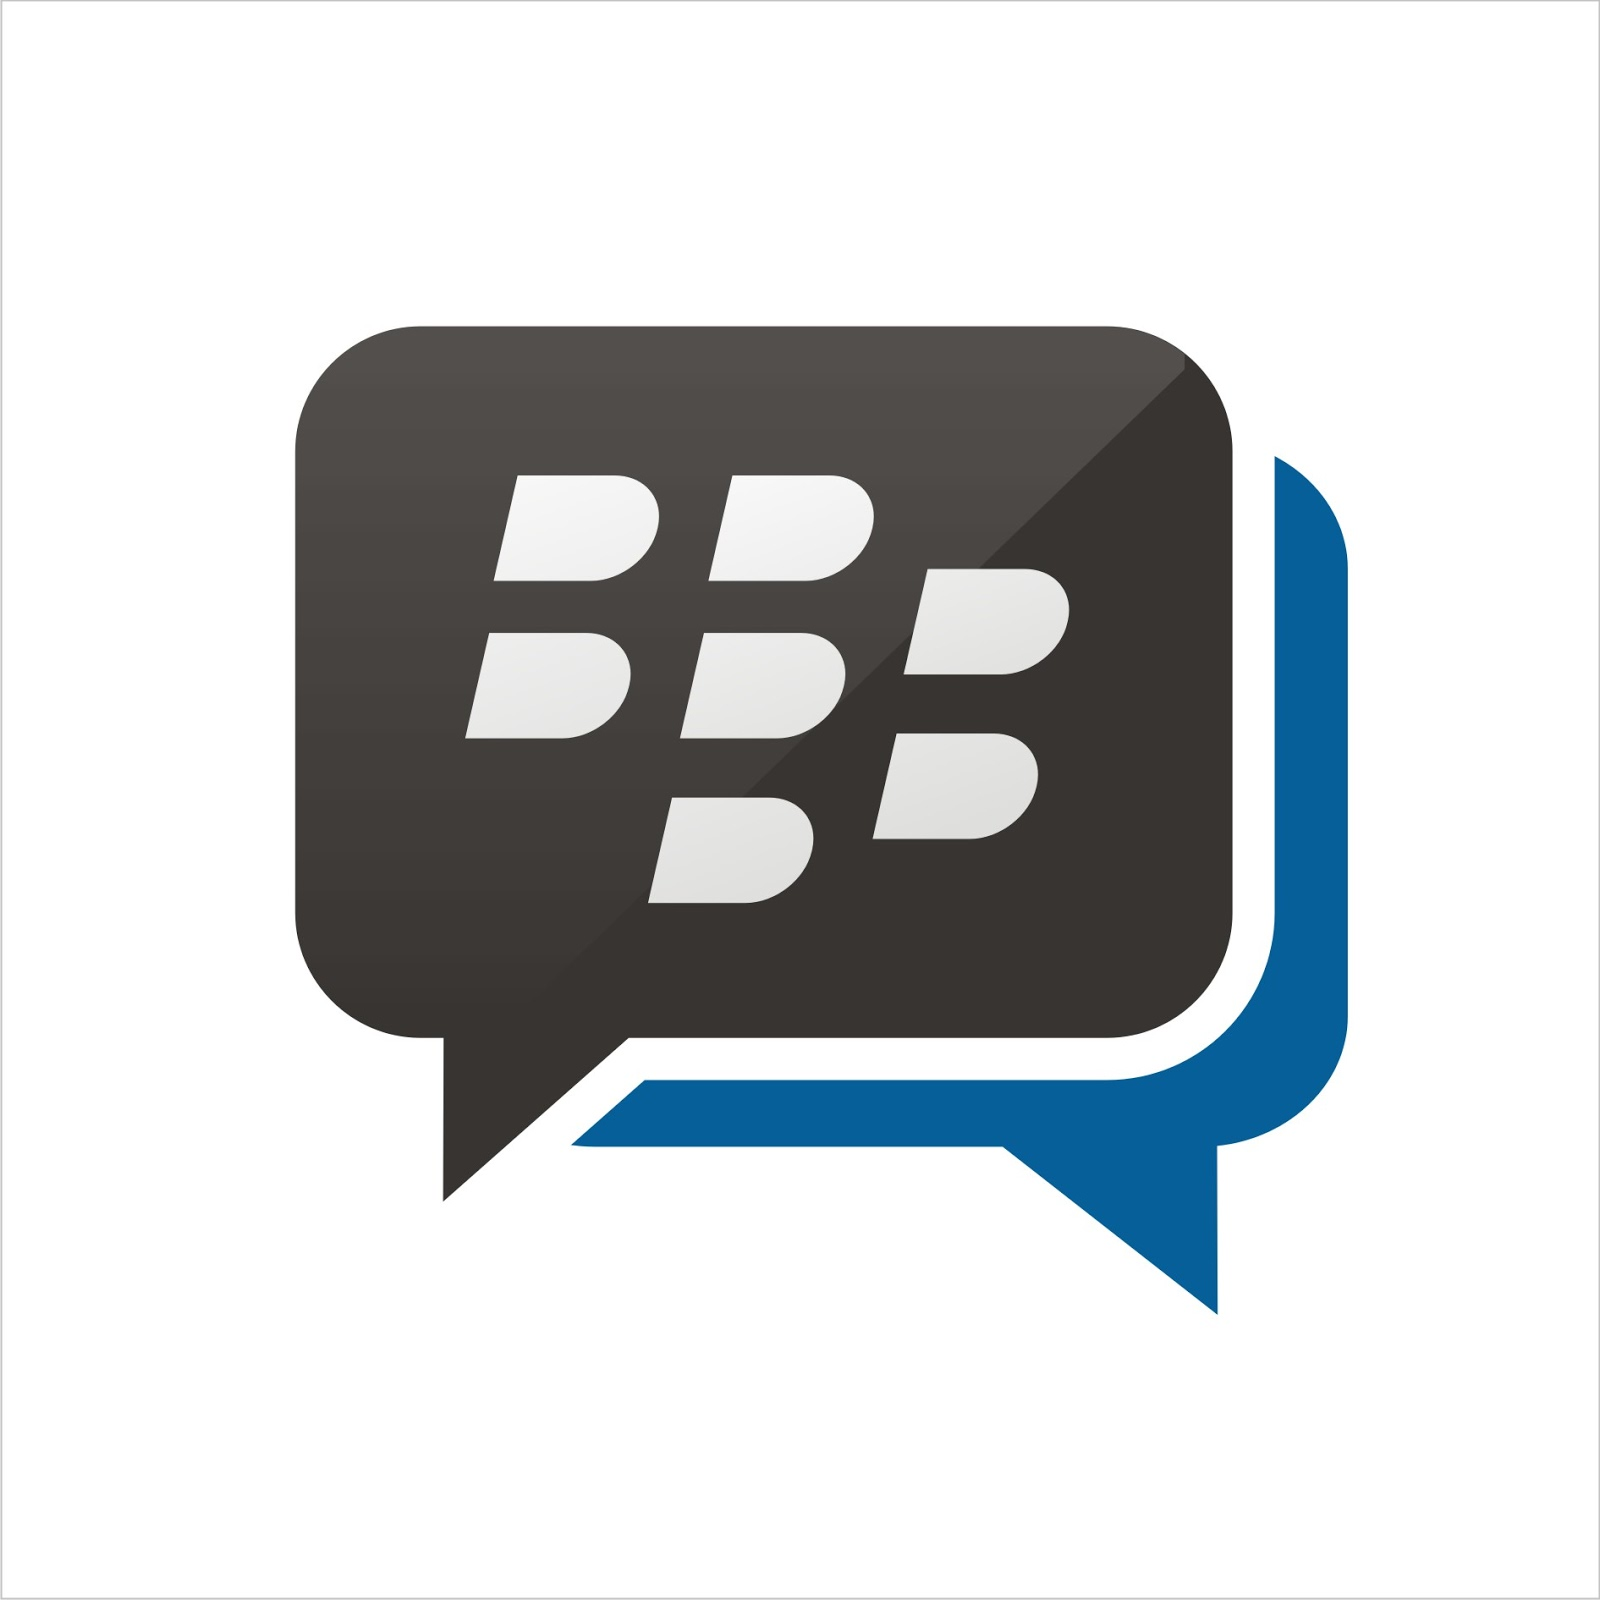 free download logo blackberry facebook twitter whatsapp